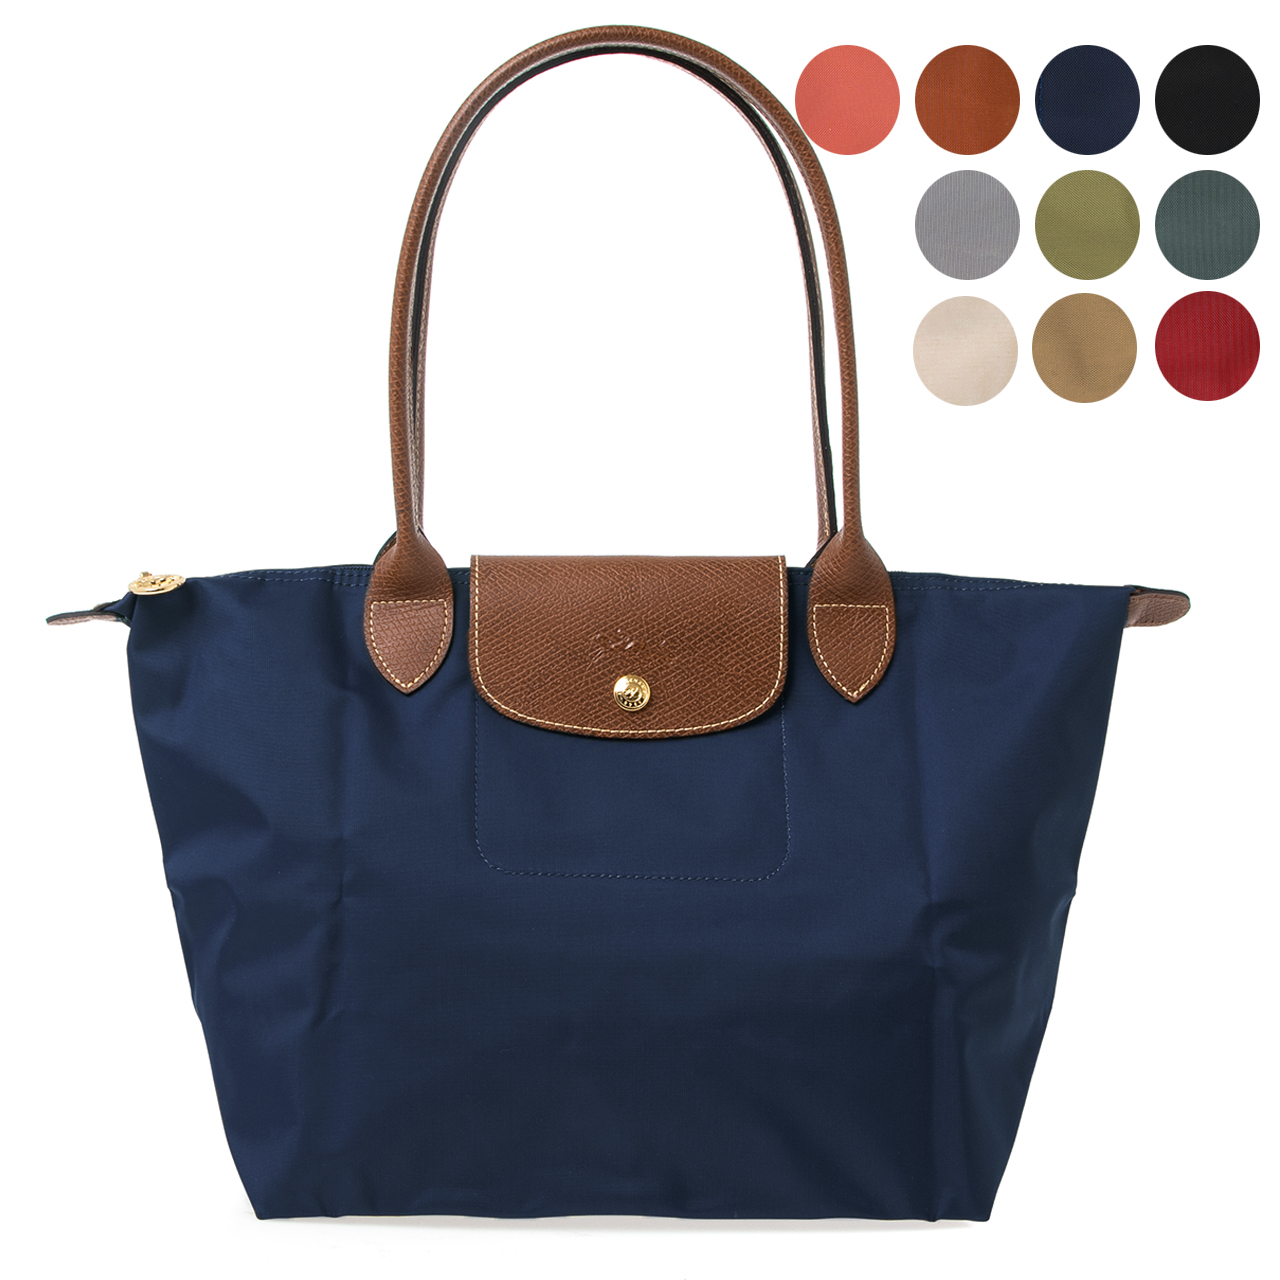 Longchamp Bag Le Pliage Colours : Chelseagardensuk rakuten global market longchamp le